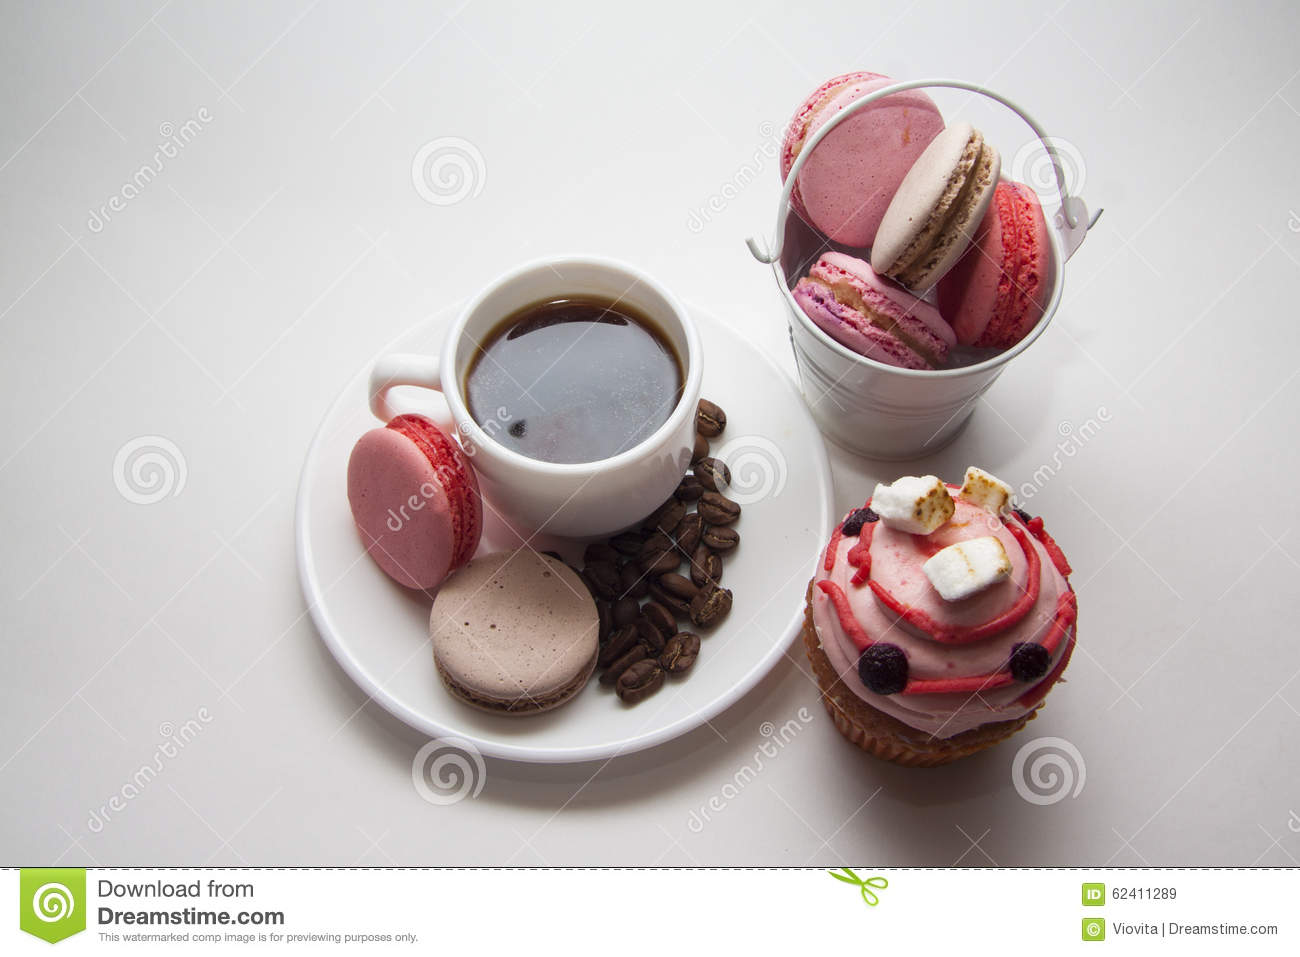 Muffins and maarons on coffee plate